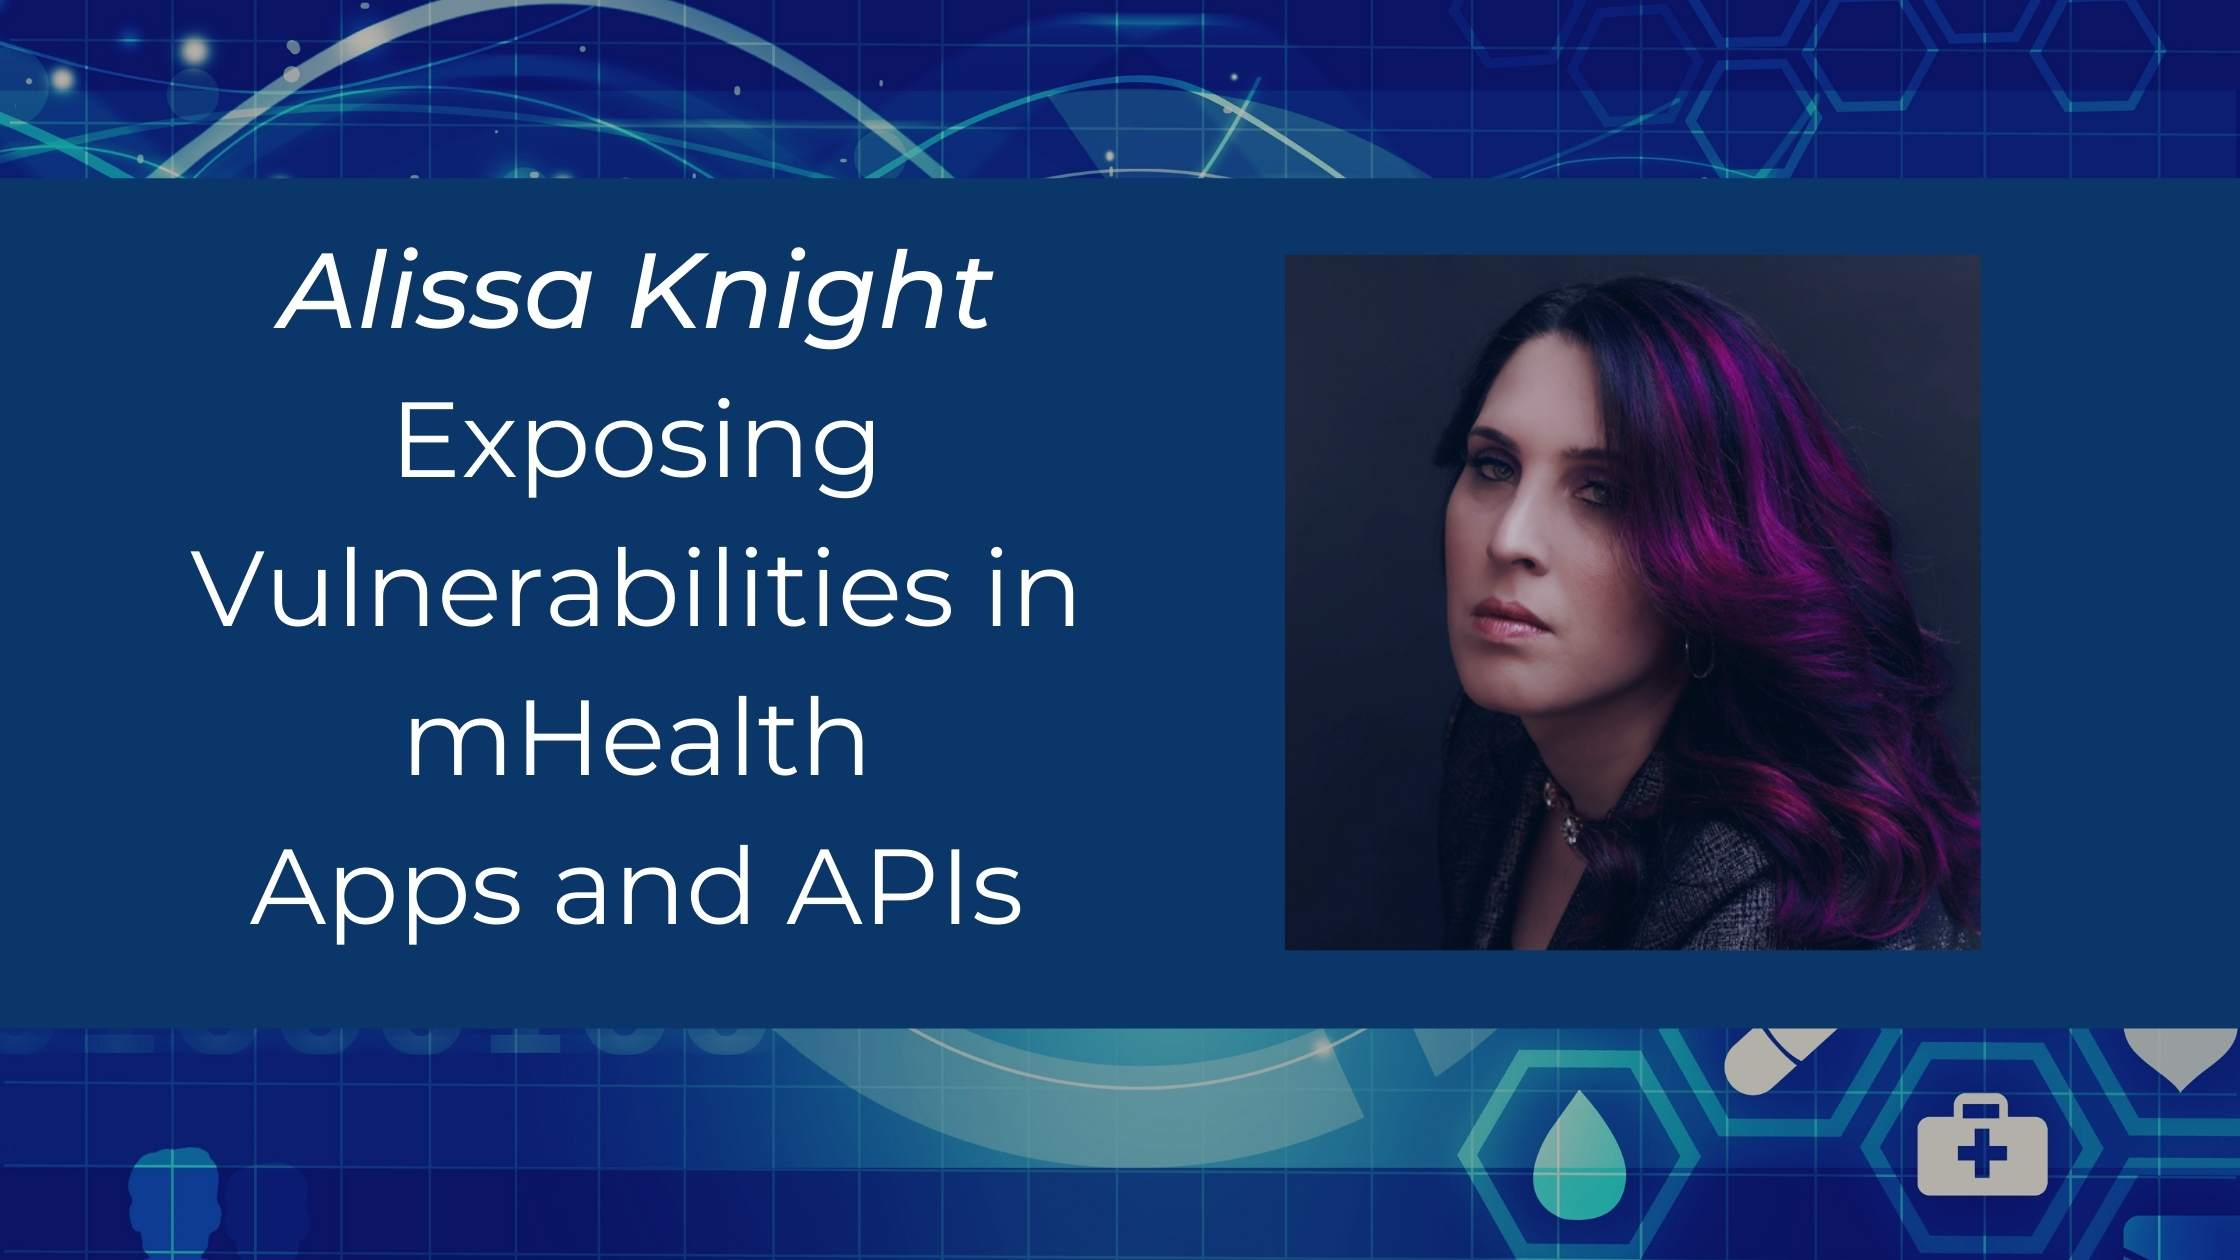 Blue medical technology themed background with text 'Exposing vulnerabilities in mHealth apps and APIs', photo of Alissa Knight